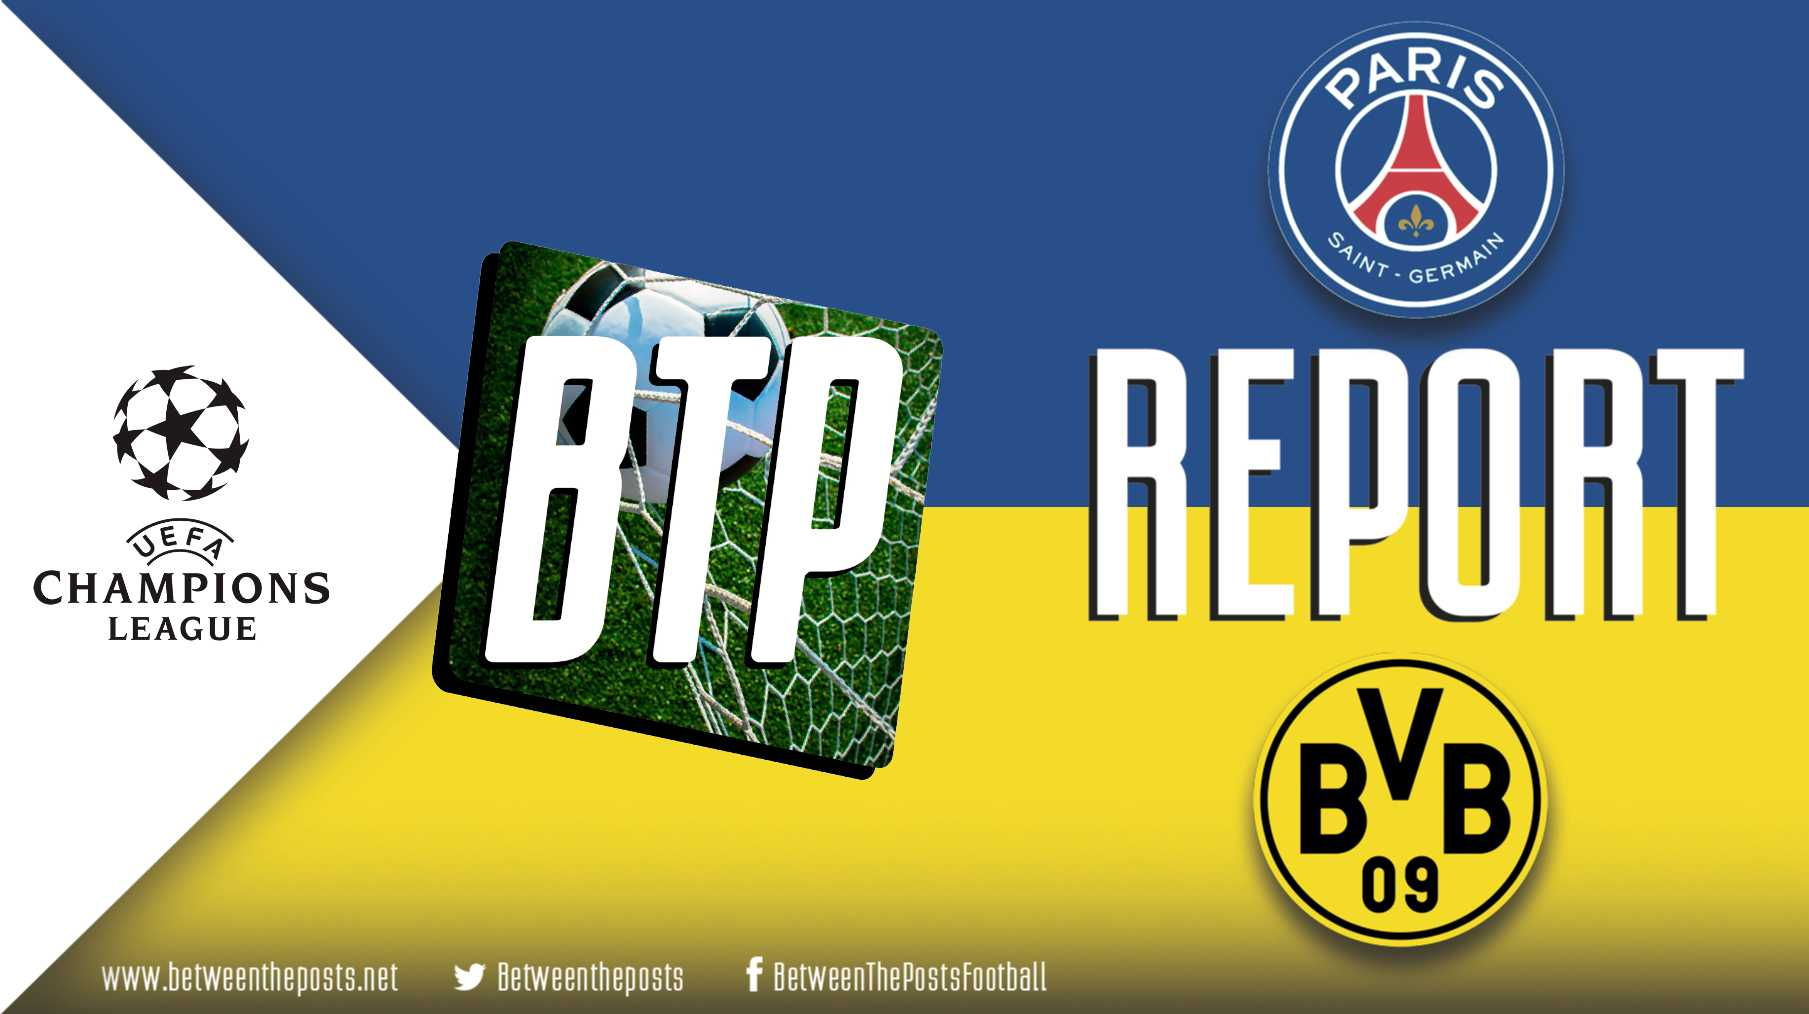 Tactical analysis Paris Saint-Germain Borussia Dortmund 2-0 Champions League